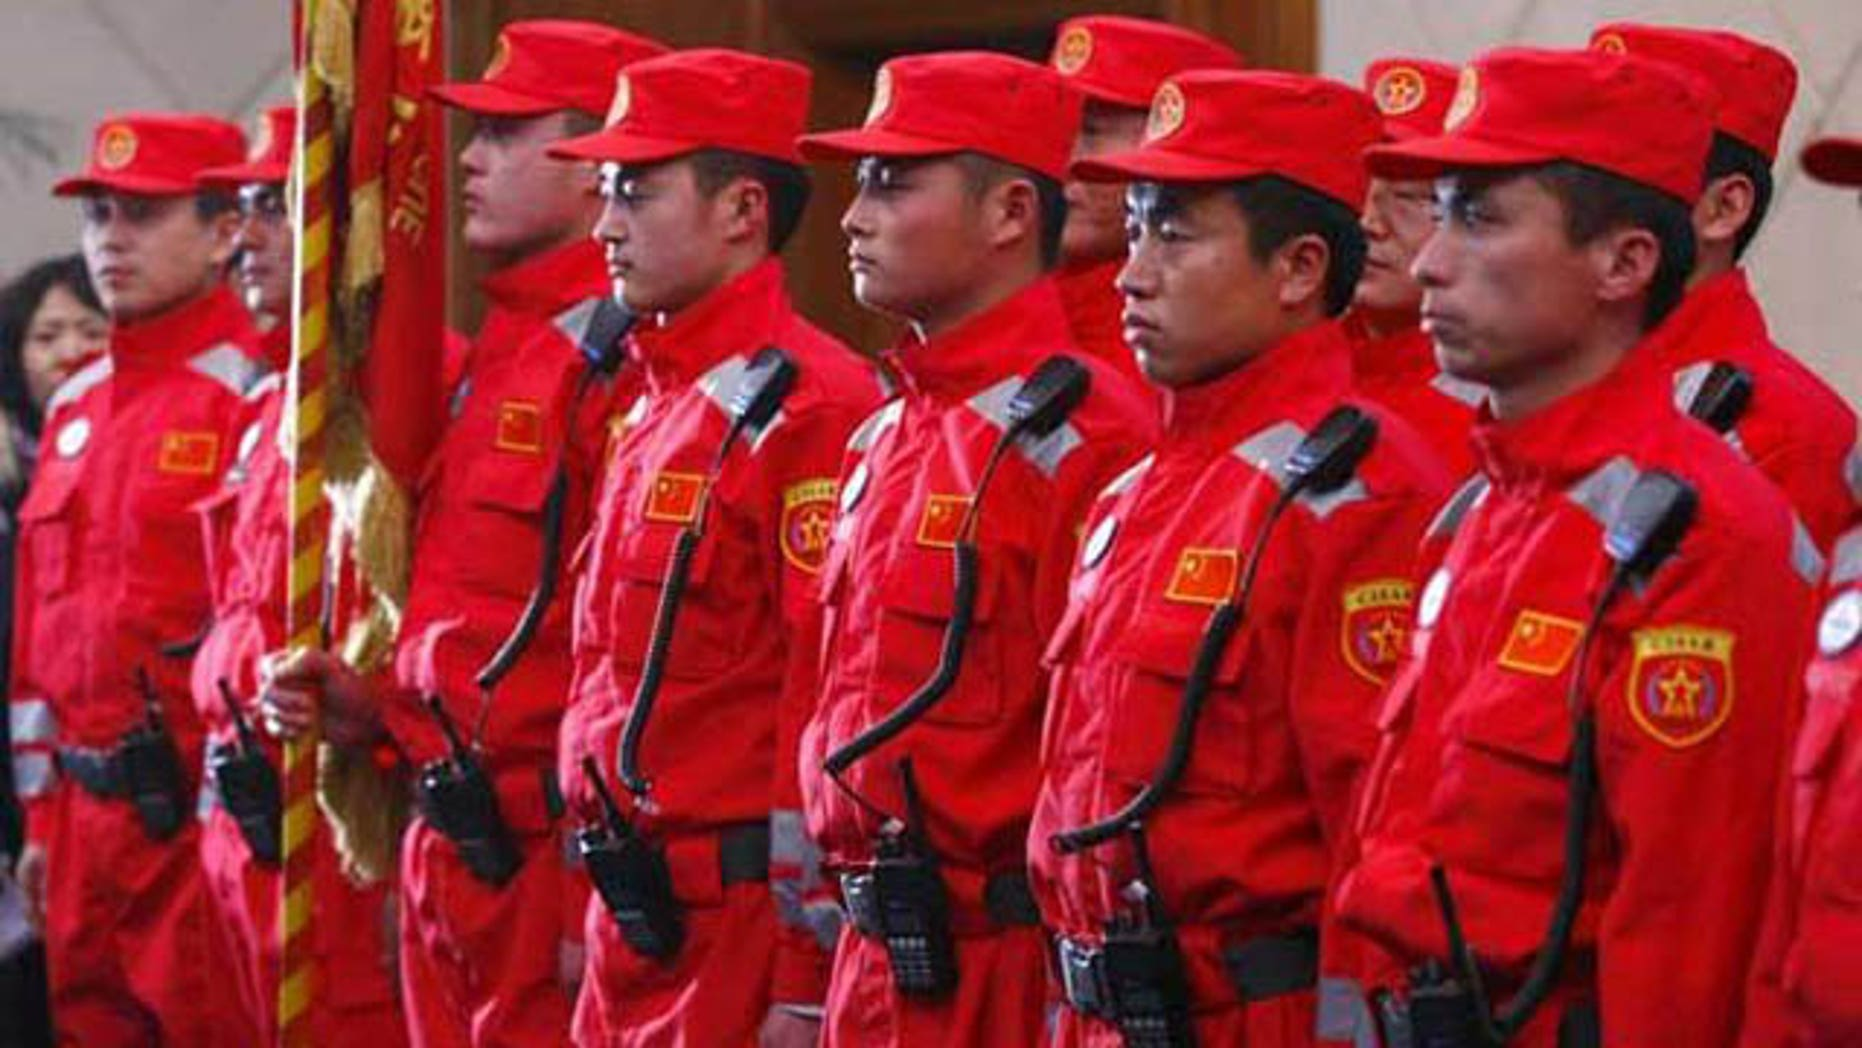 Deep seeded anti-Japanese sentiment in China has sparked anger by some over Beijing's relief efforts to Japan, which include this rescue team set to deploy.